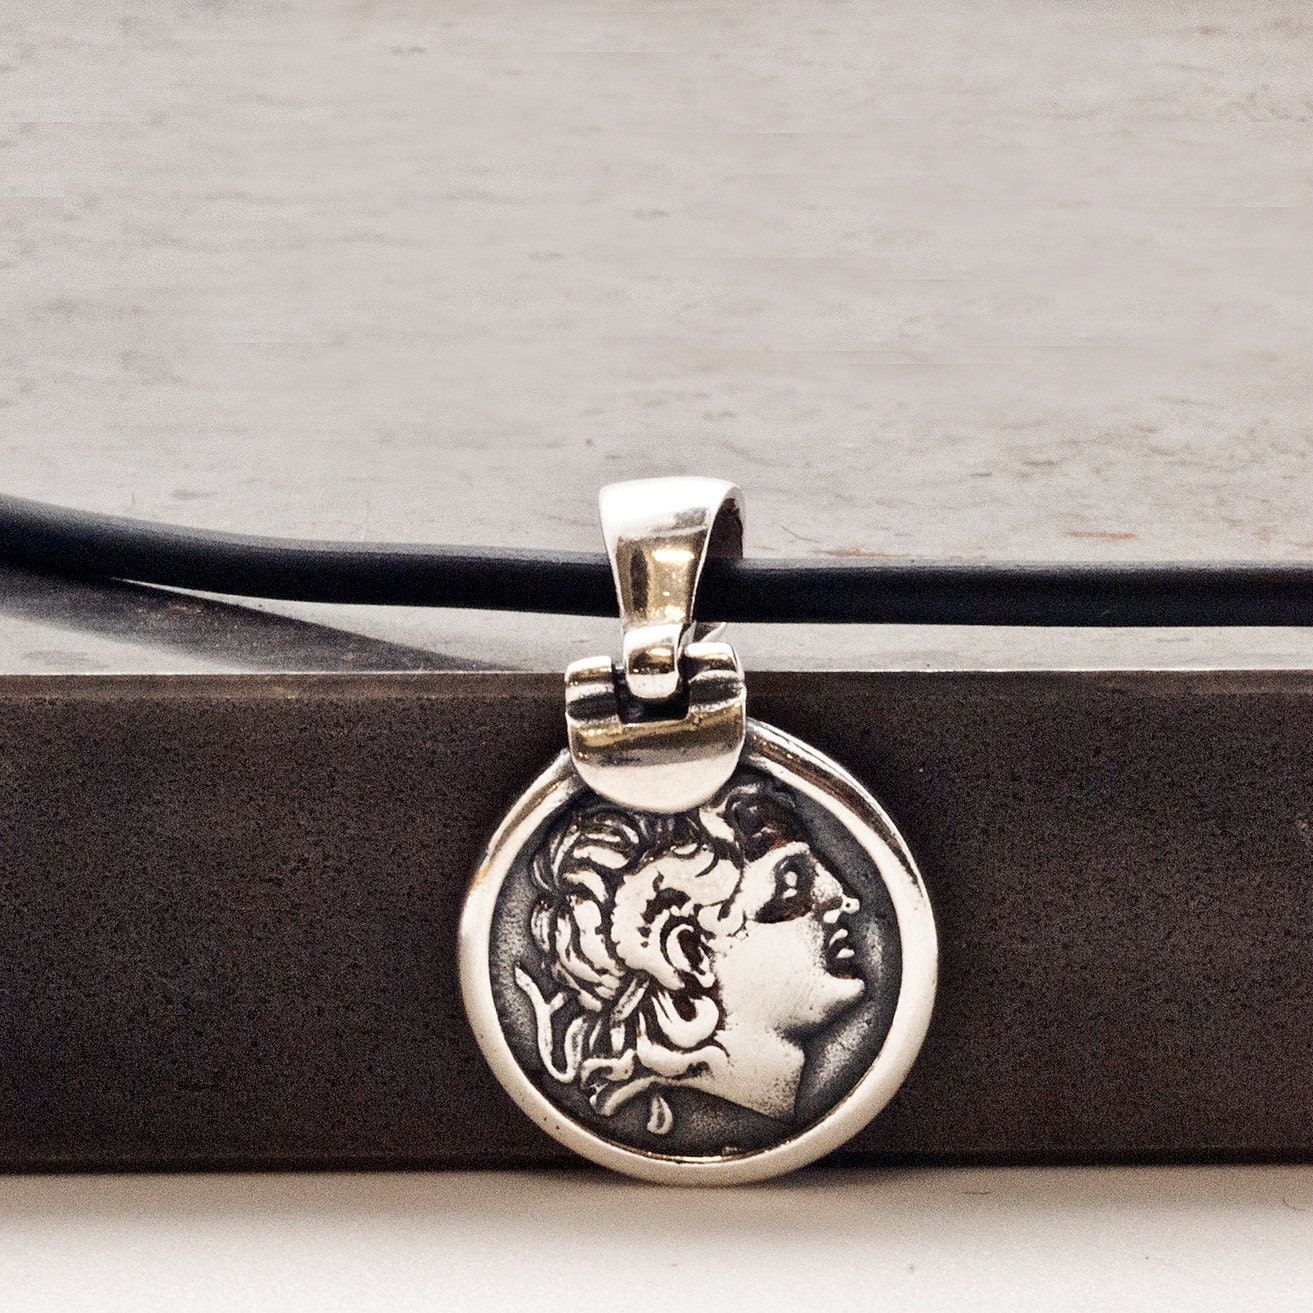 Greek Necklace Images - Reverse Search